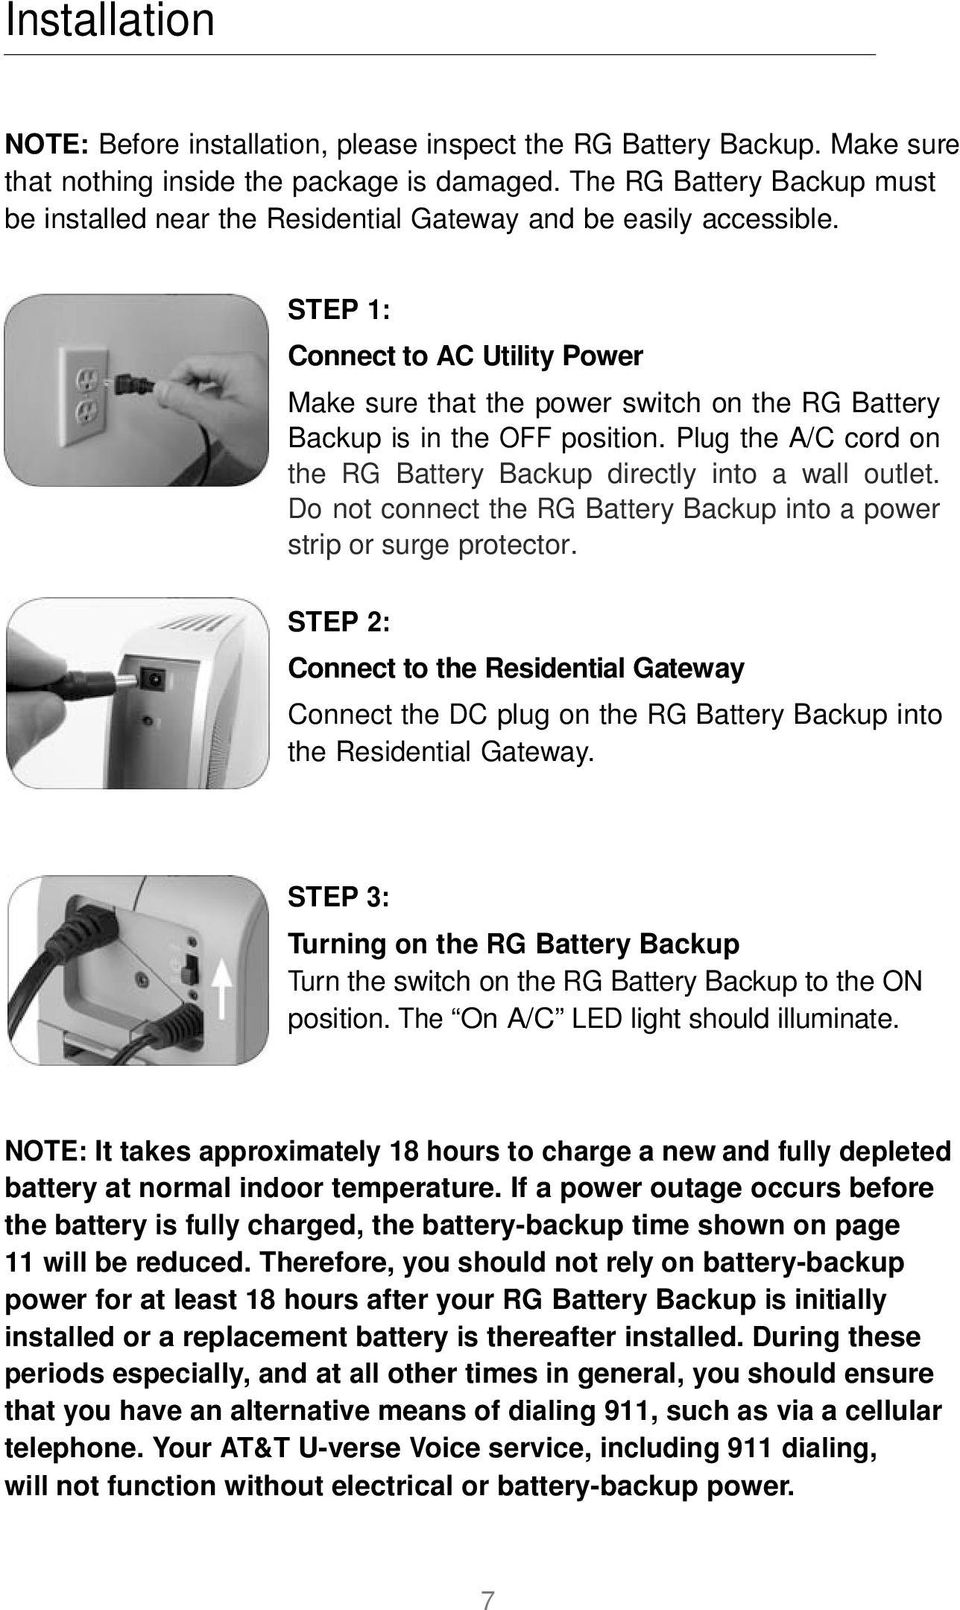 STEP 1: Connect to AC Utility Power Make sure that the power switch on the RG Battery Backup is in the OFF position. Plug the A/C cord on the RG Battery Backup directly into a wall outlet.